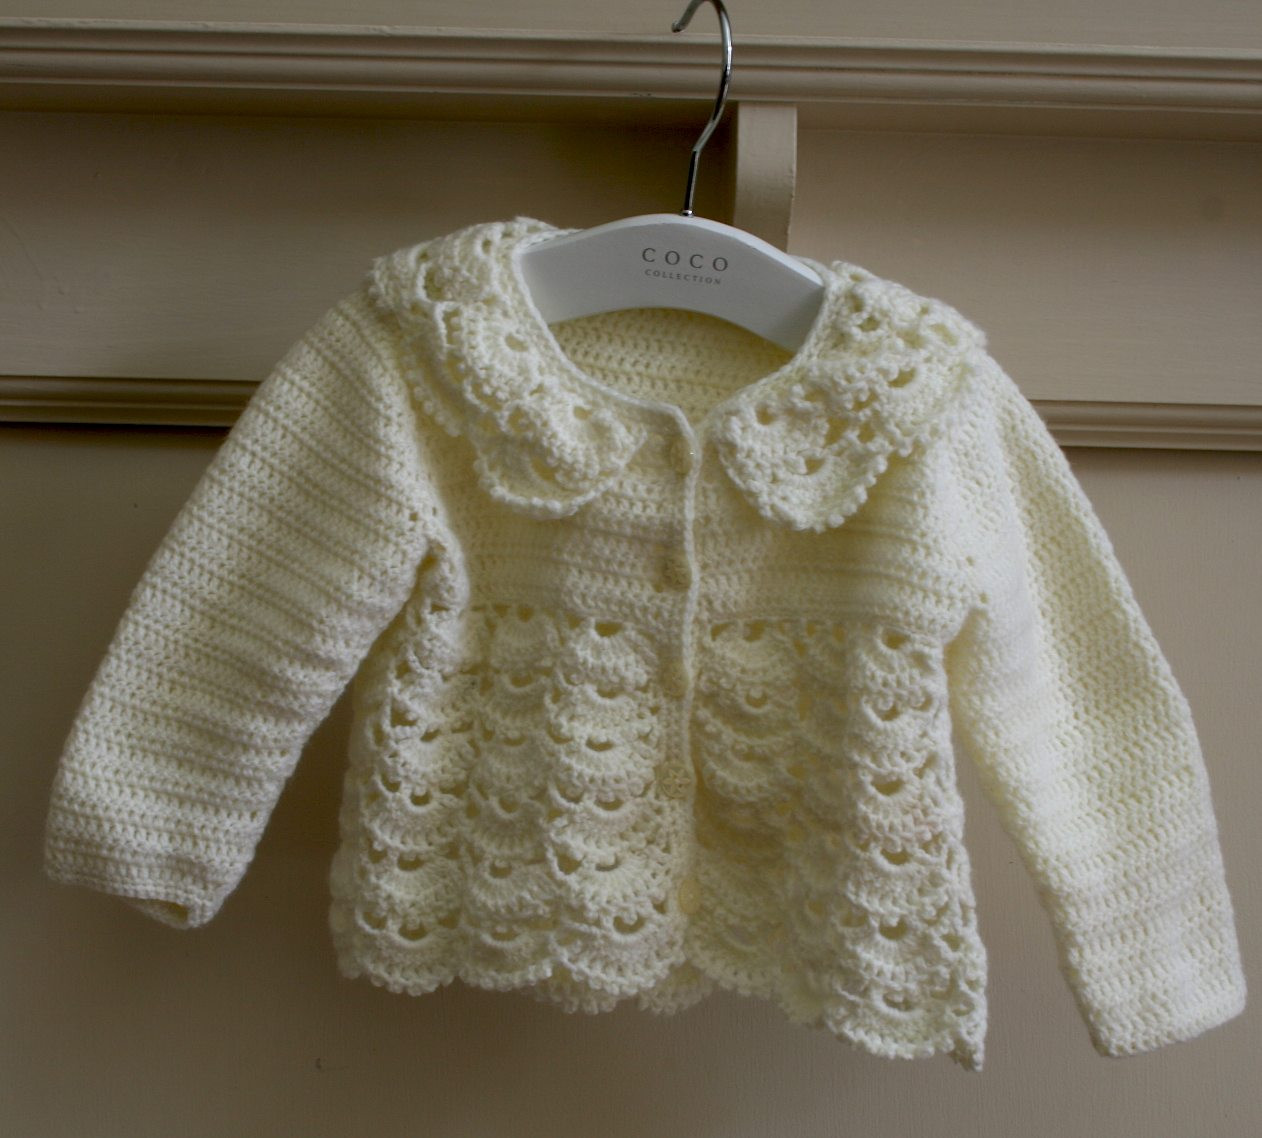 Crochet Baby Cardigan Pattern Luxury Zurbahan Blog August 2013 Of Luxury 44 Pictures Crochet Baby Cardigan Pattern